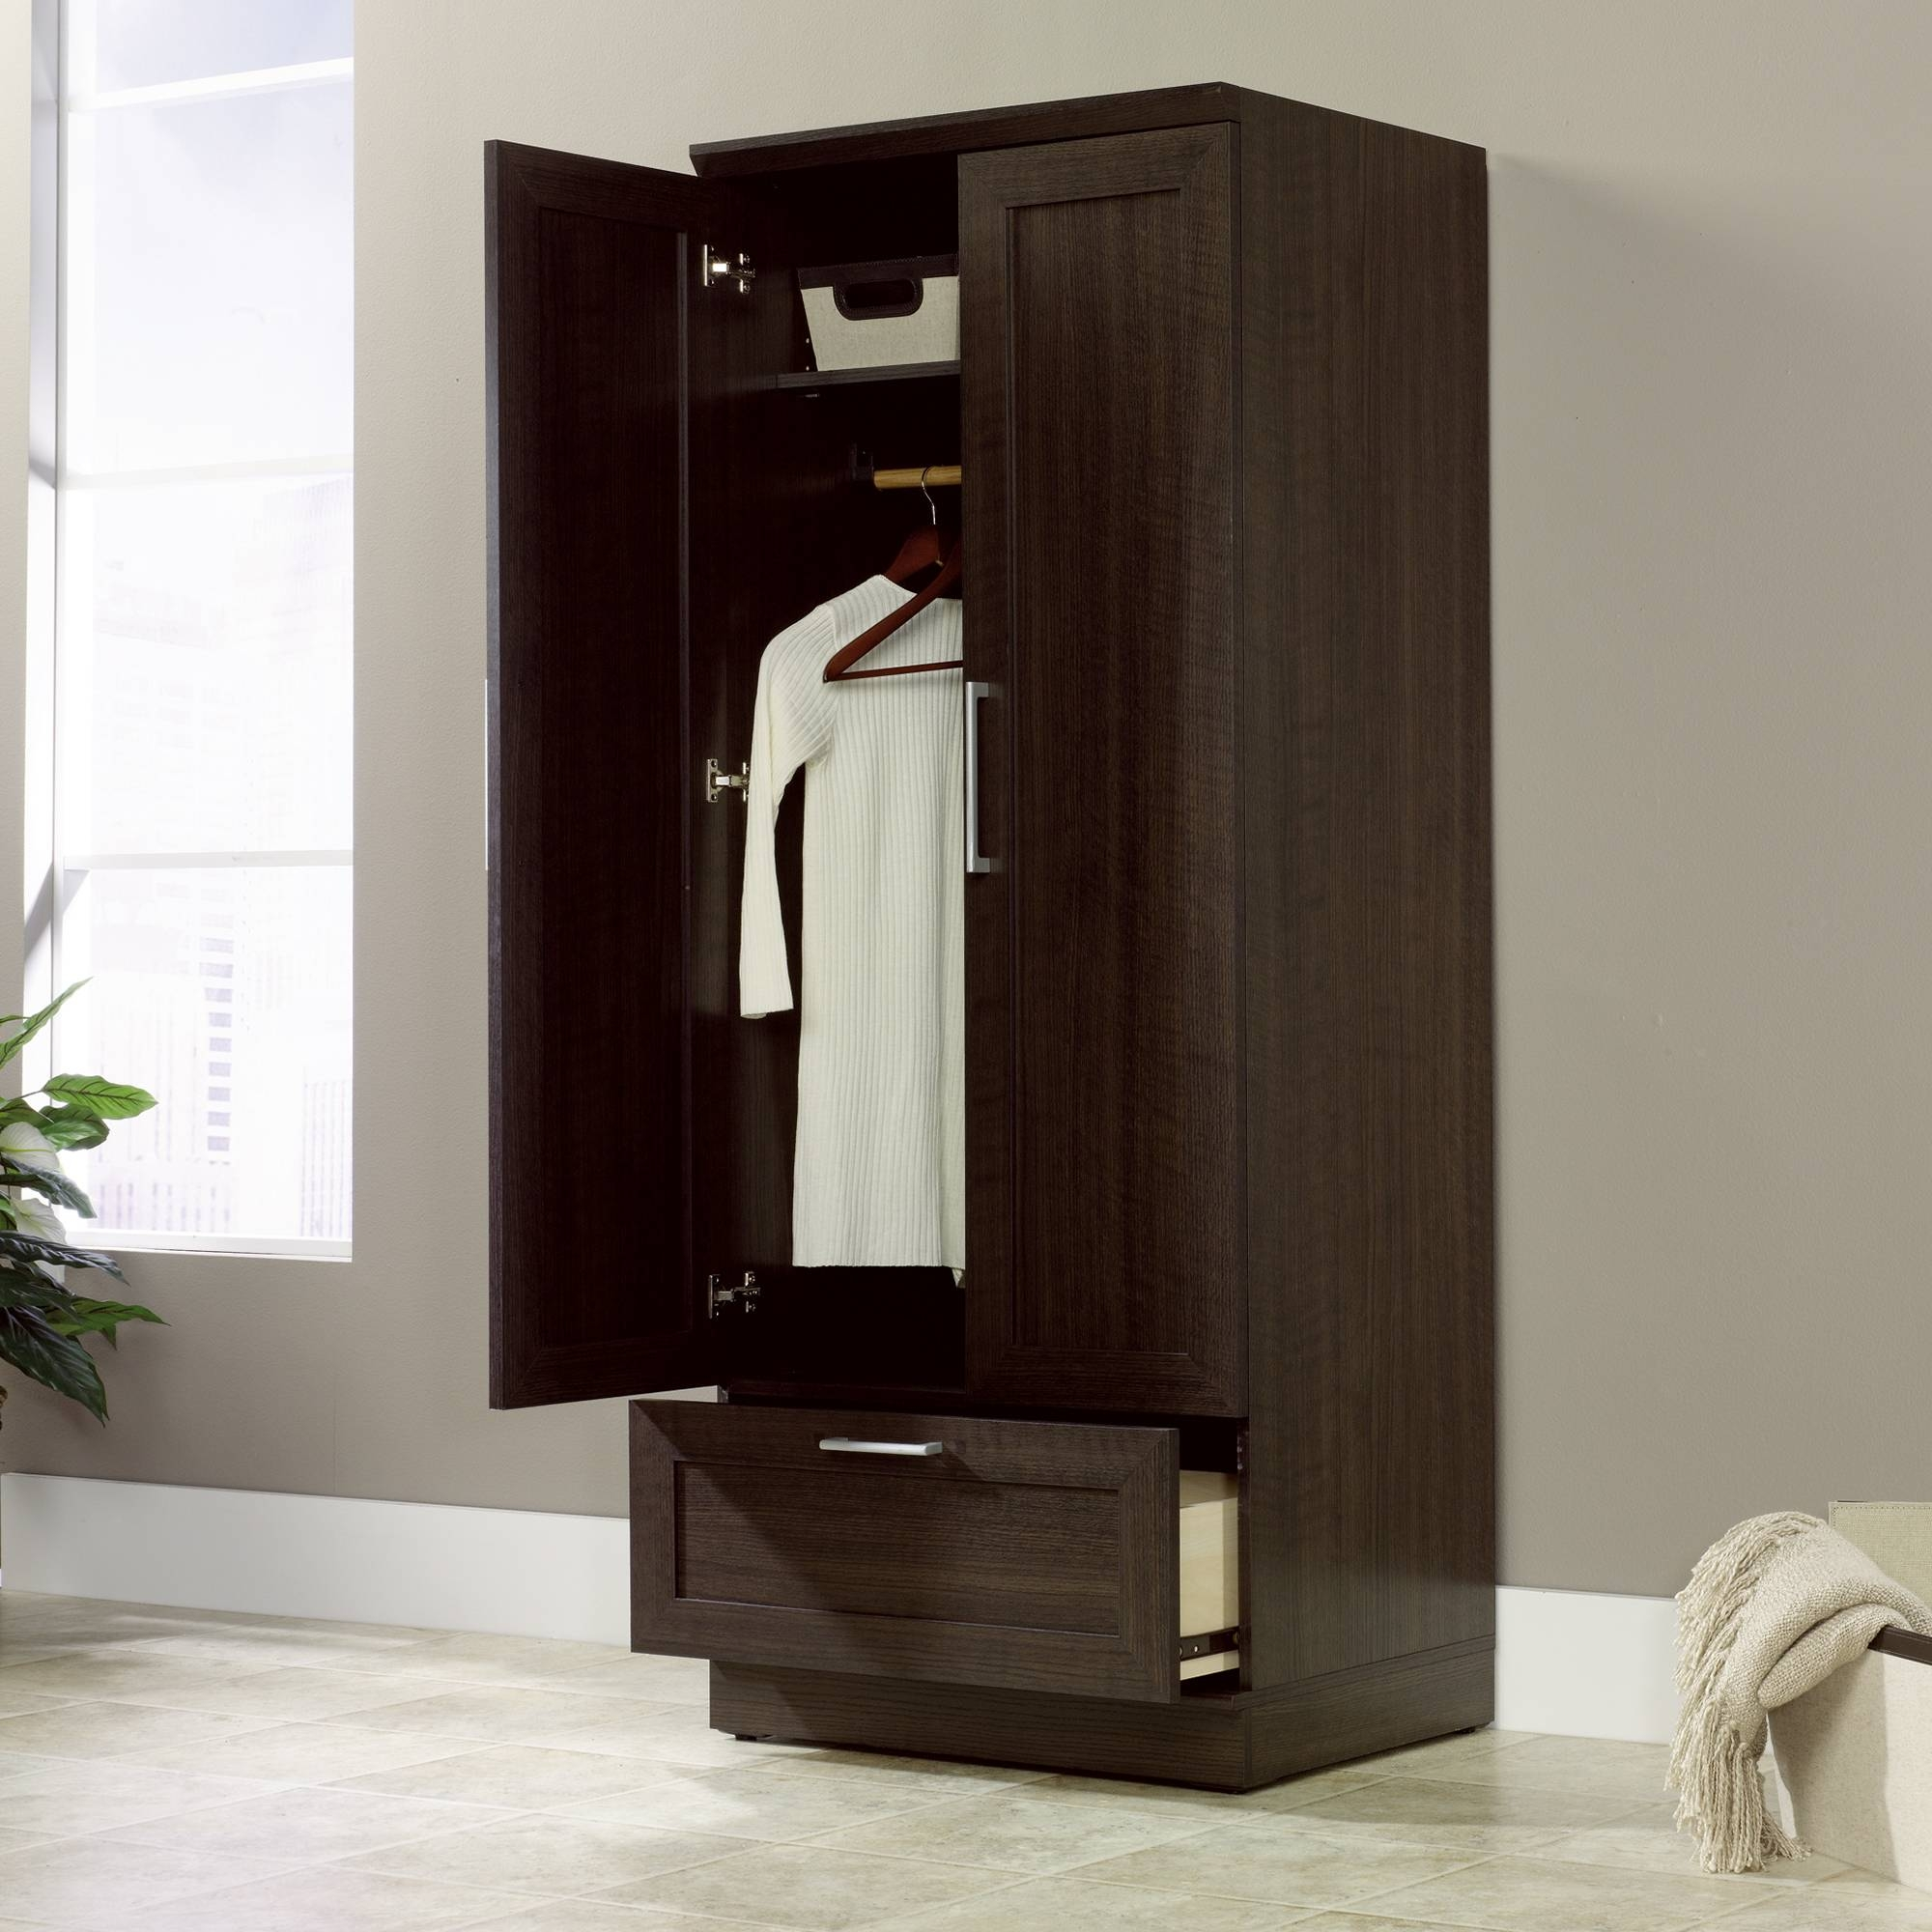 Homeplus | Wardrobe Storage Cabinet | 411312 | Sauder for Oak Wardrobe With Drawers And Shelves (Image 17 of 30)